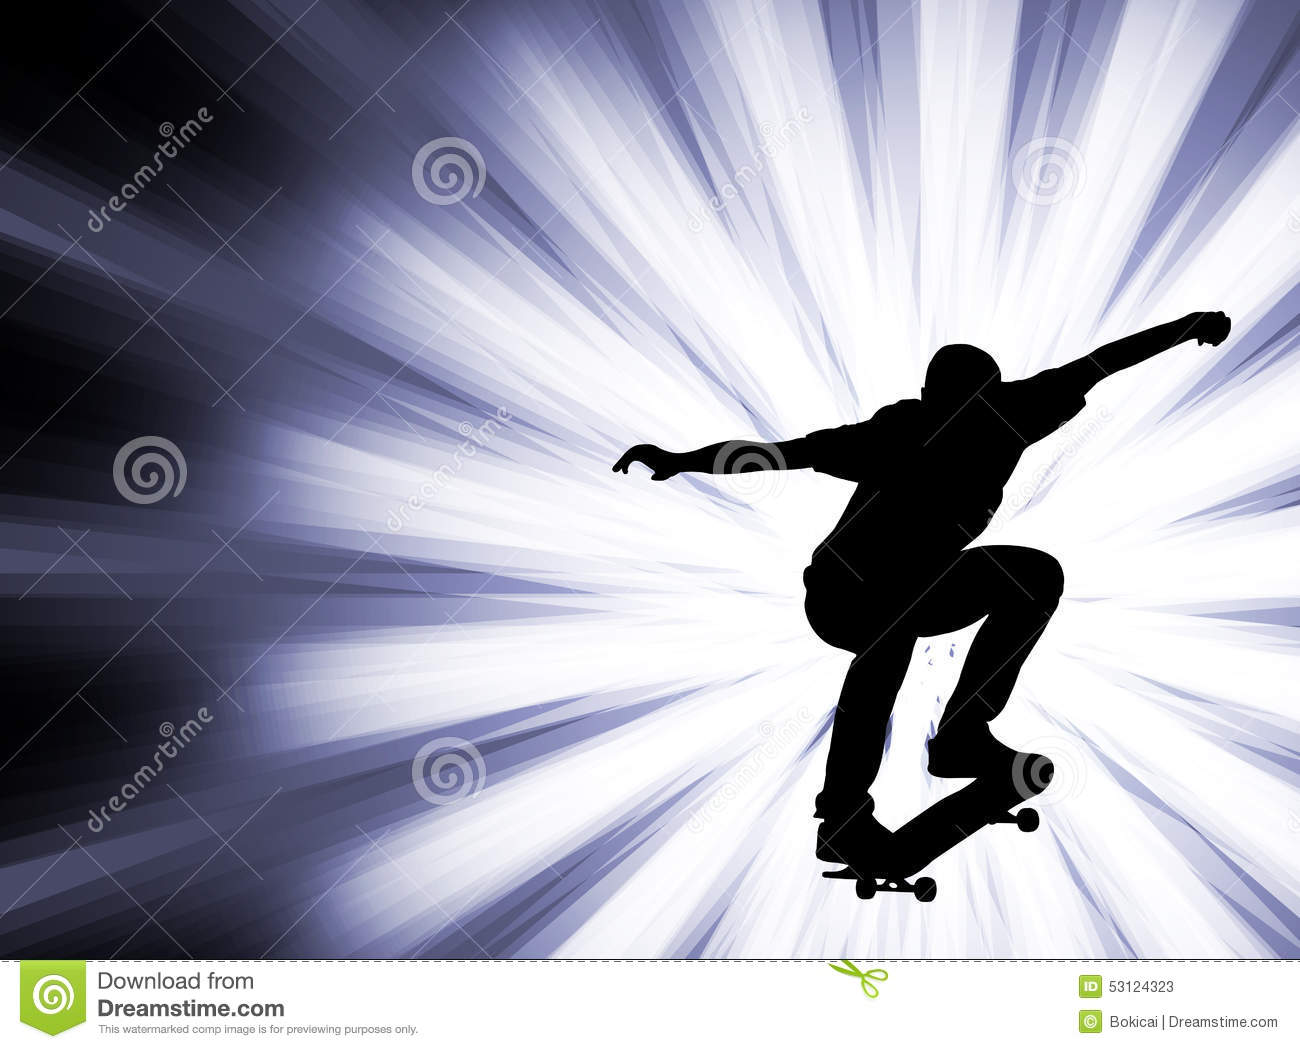 Skateboarder on the abstract background